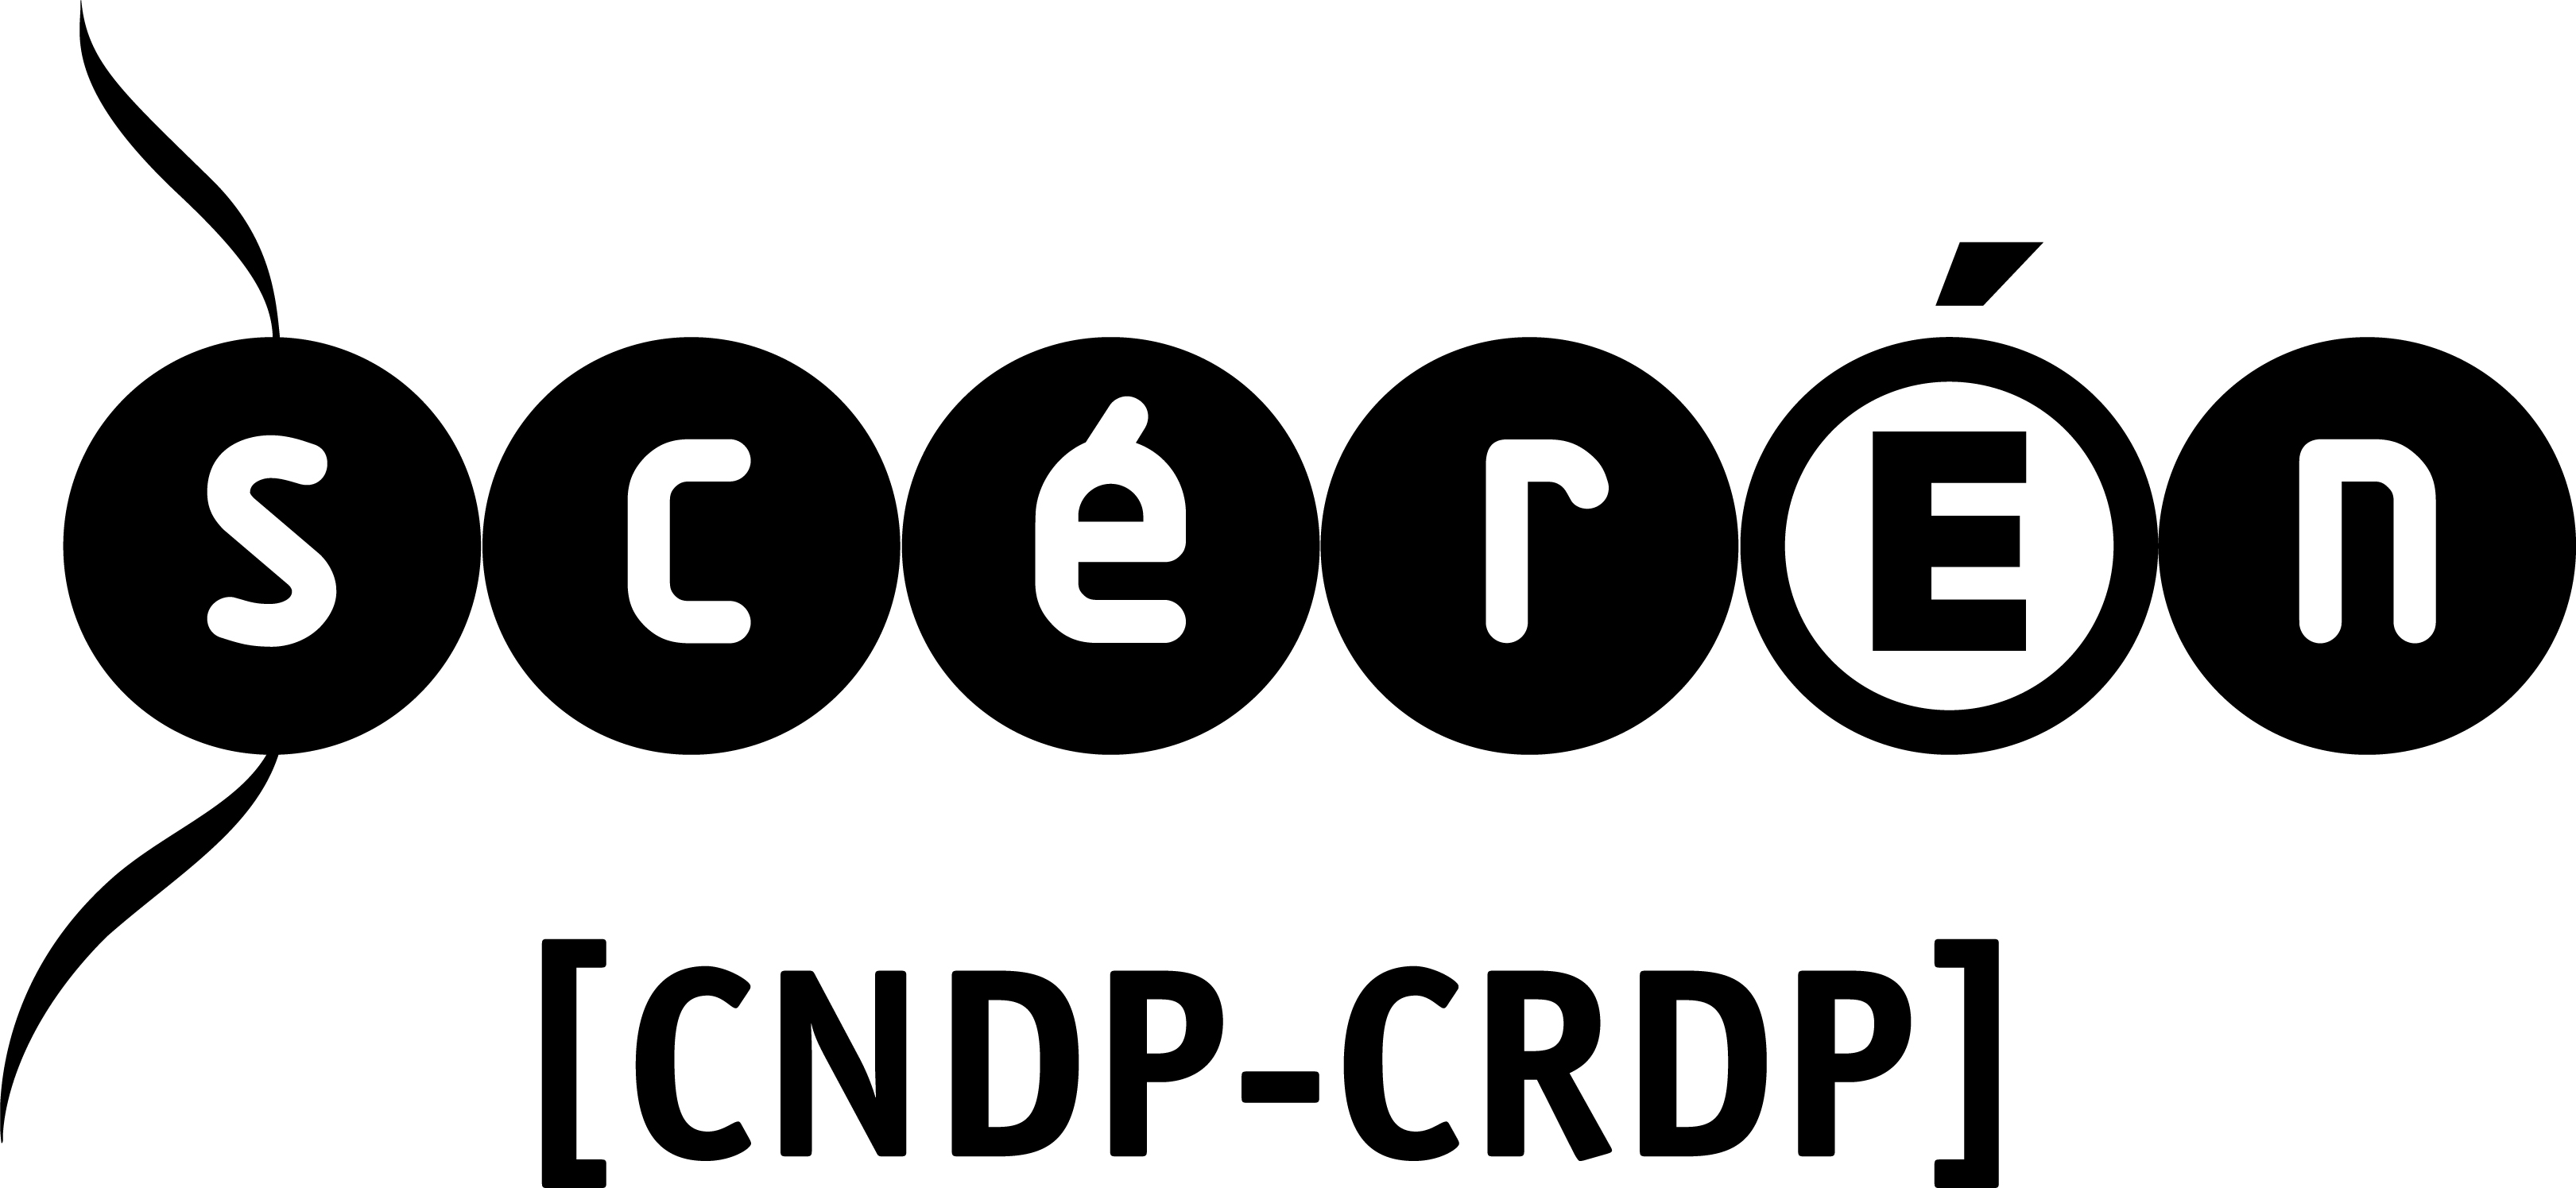 SCERENCNDP